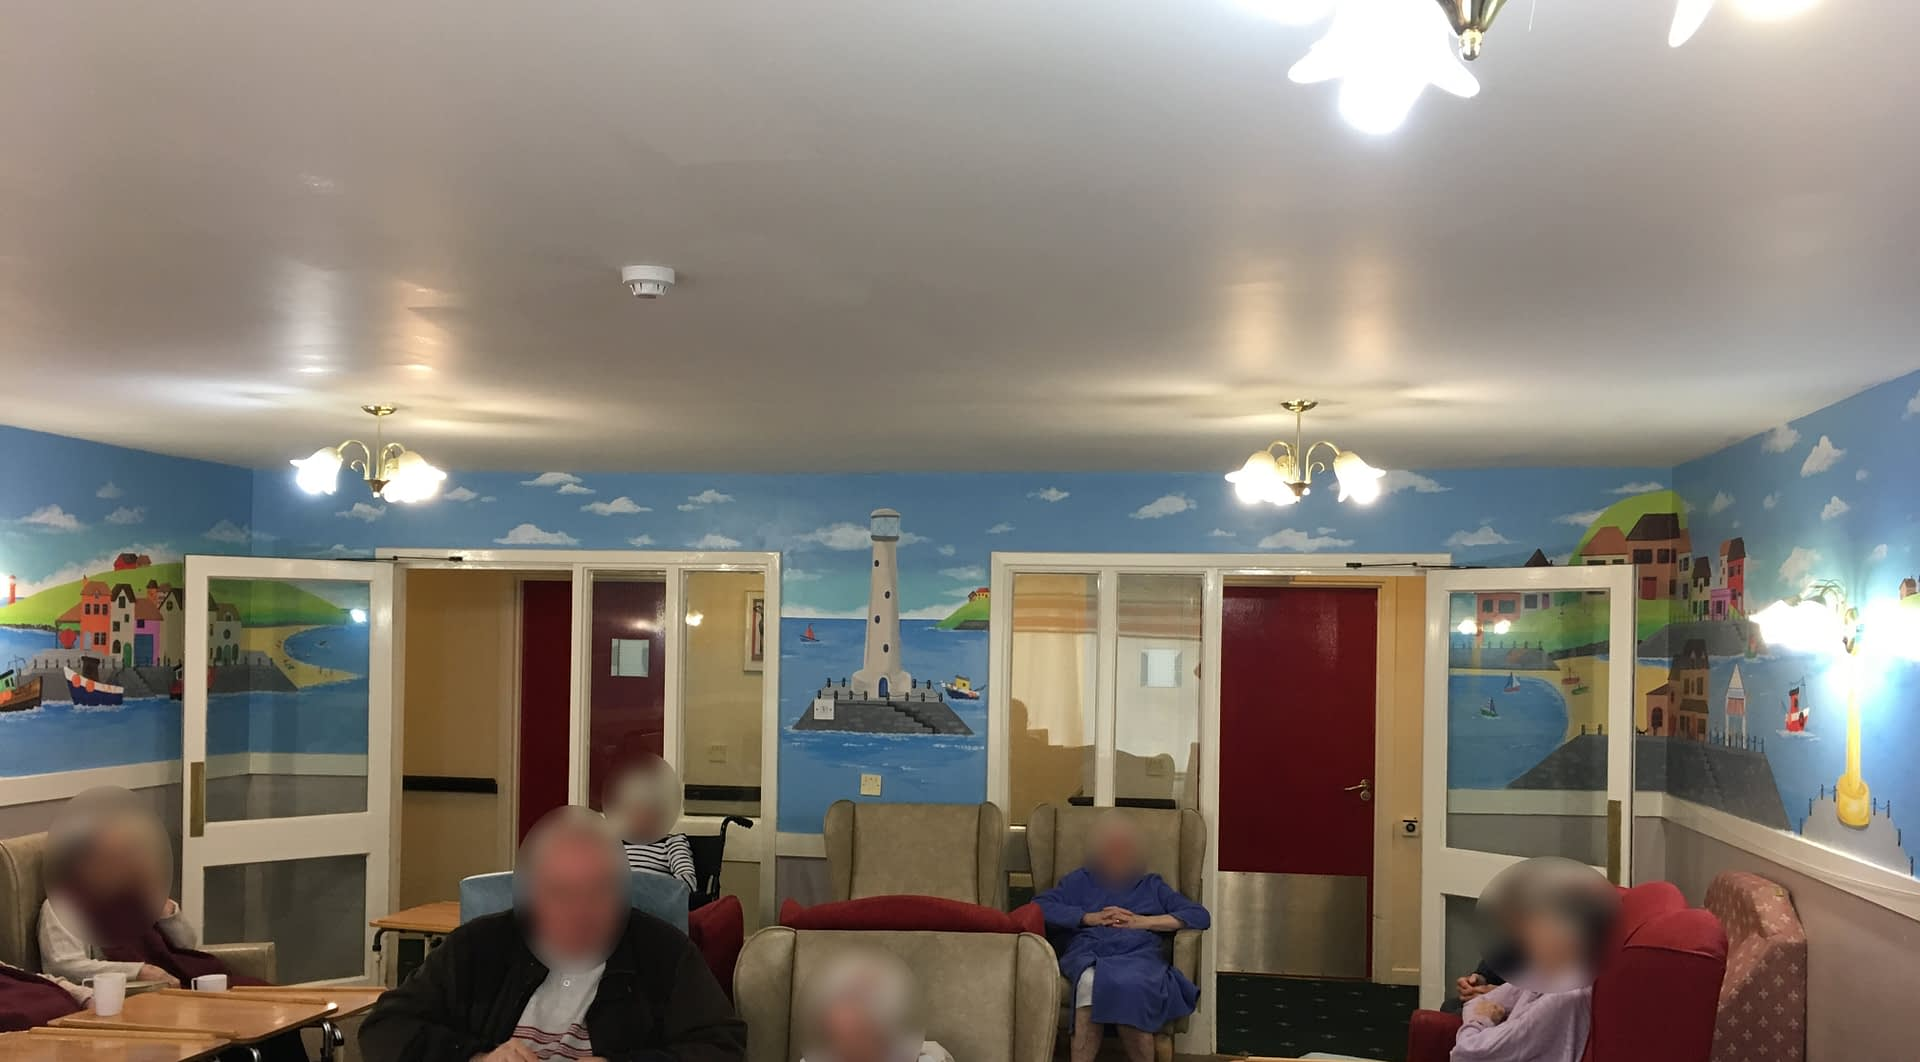 St. Andrews Care home ( Day Room Seaside Mural )